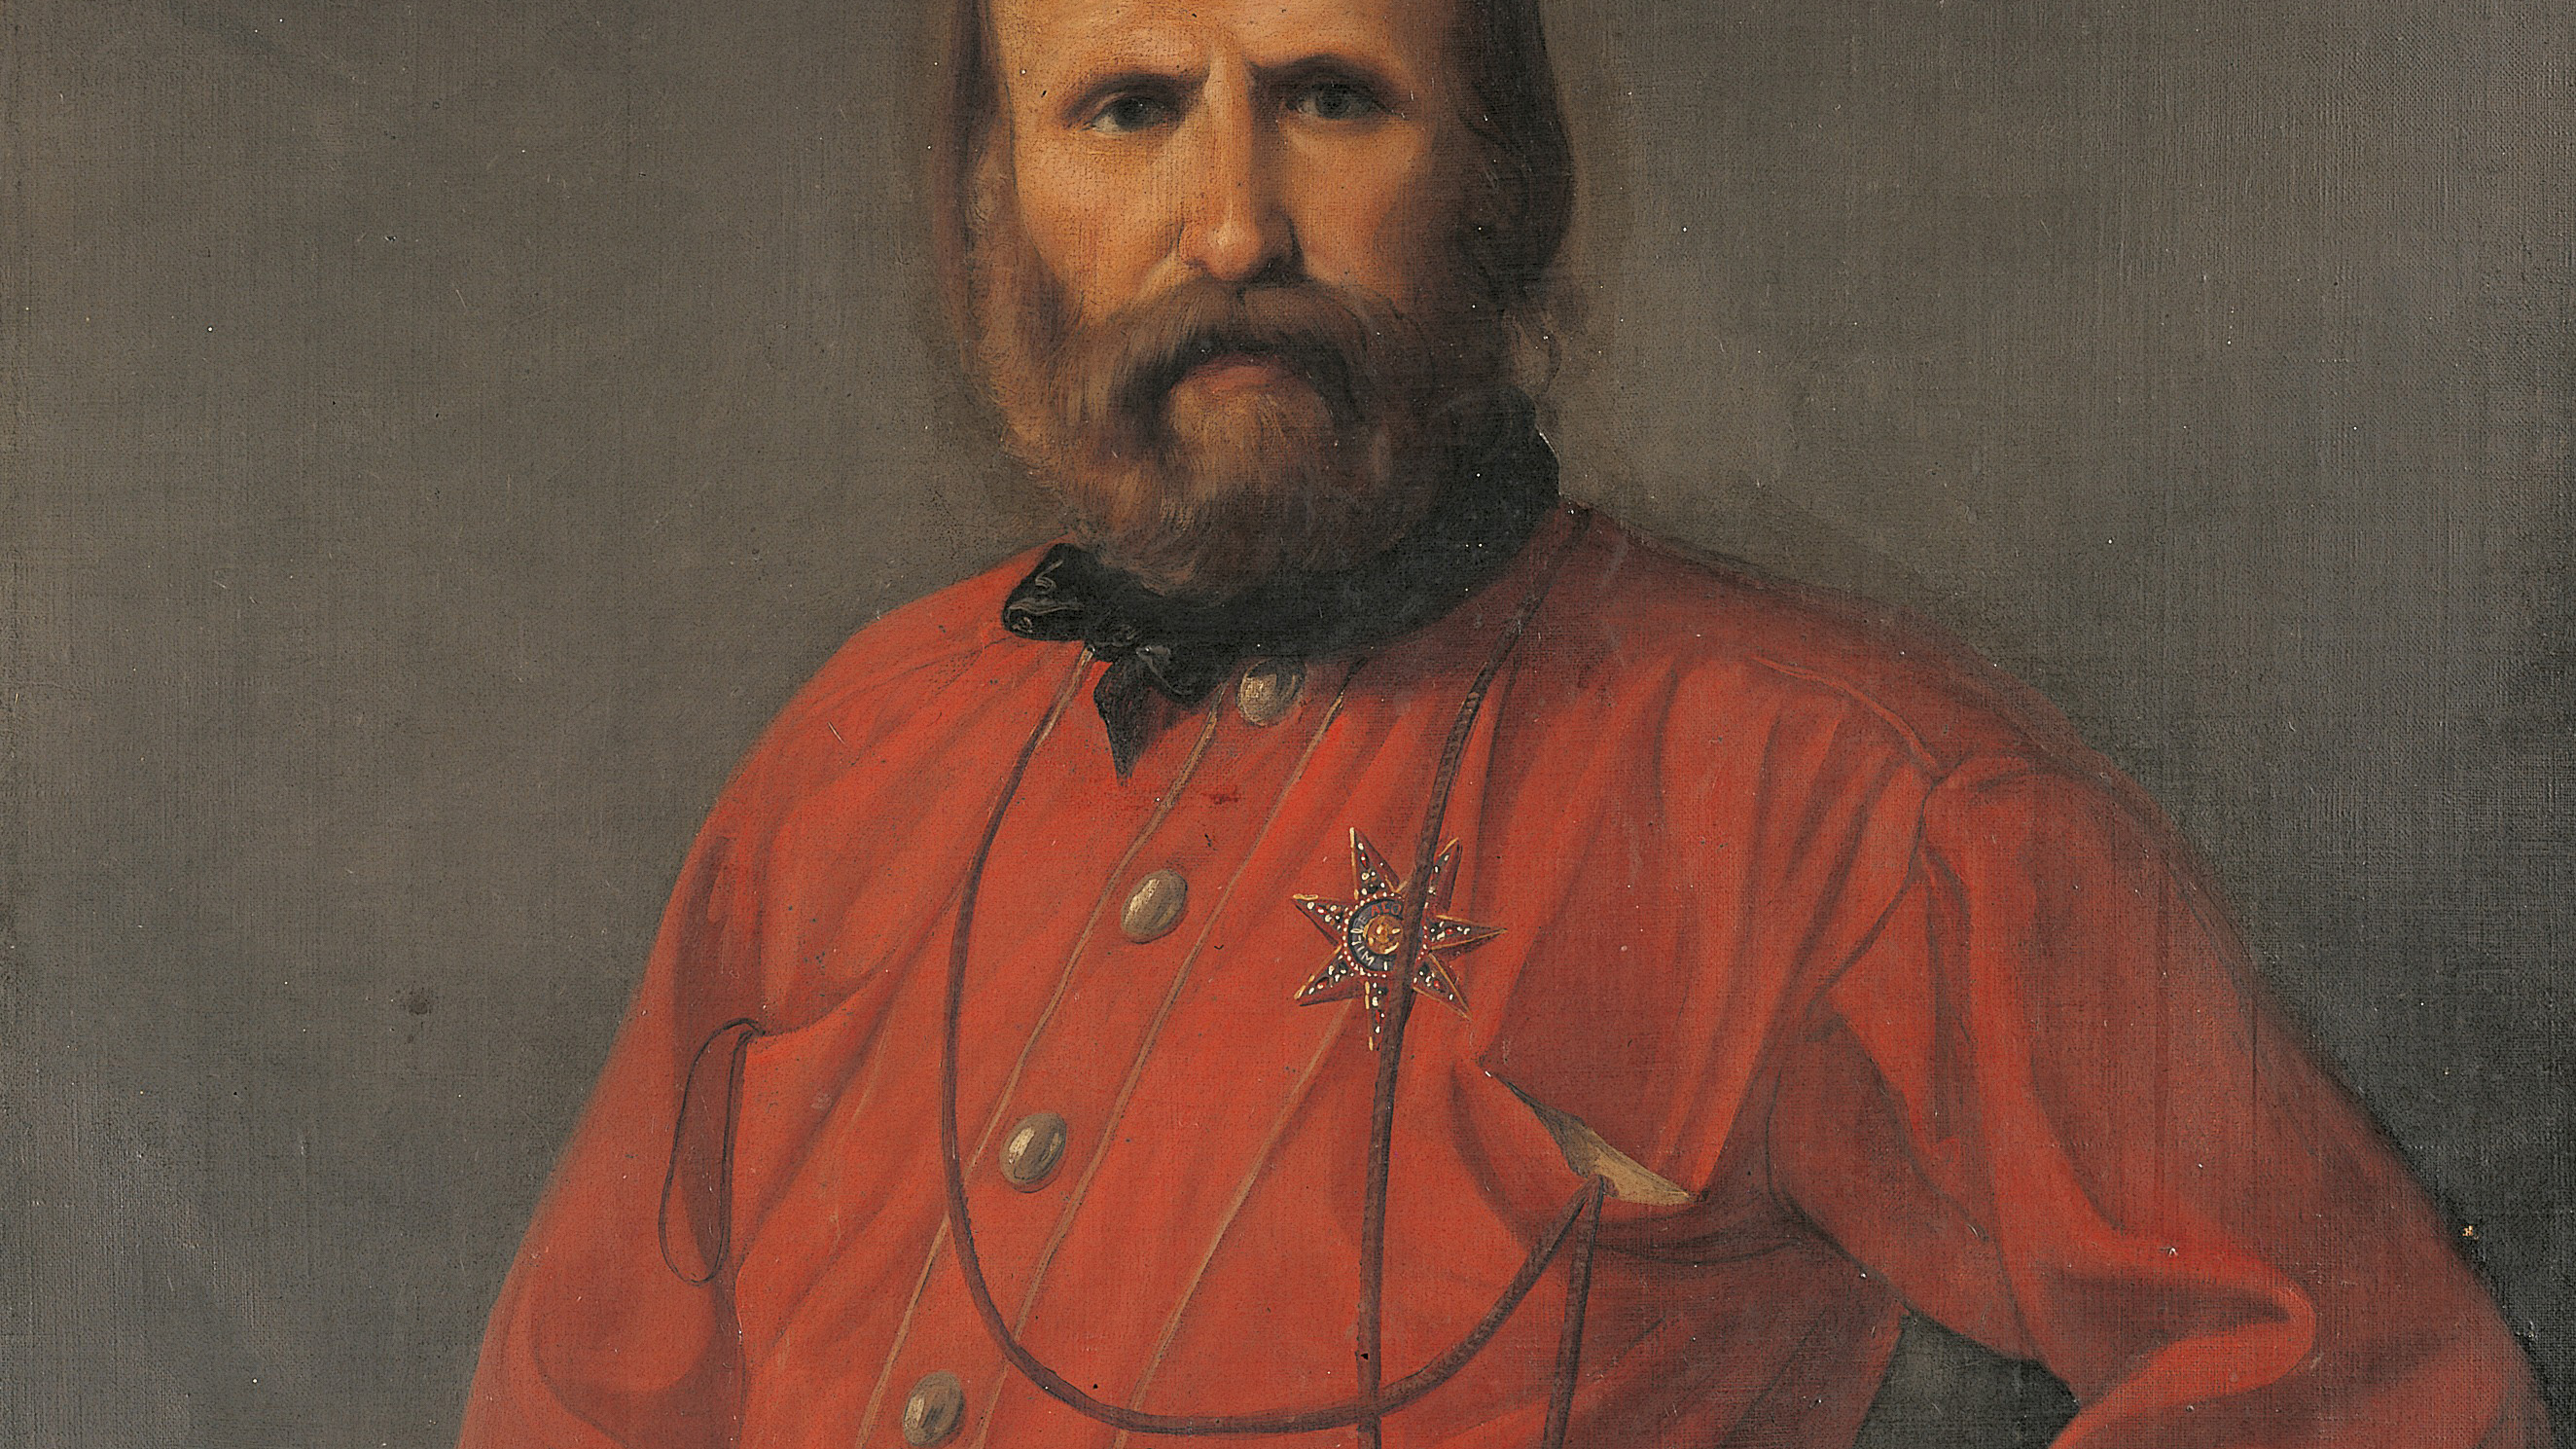 a history of giuseppe garibaldi an italian general and politician Full name: giuseppe garibaldi nationality: italian profession: unifier of italy why famous: an italian general, politician and nationalist, garibaldi was a central figure in the italian risorgimento he personally commanded and fought in many military campaigns which ultimately led to the formation of a unified italy.